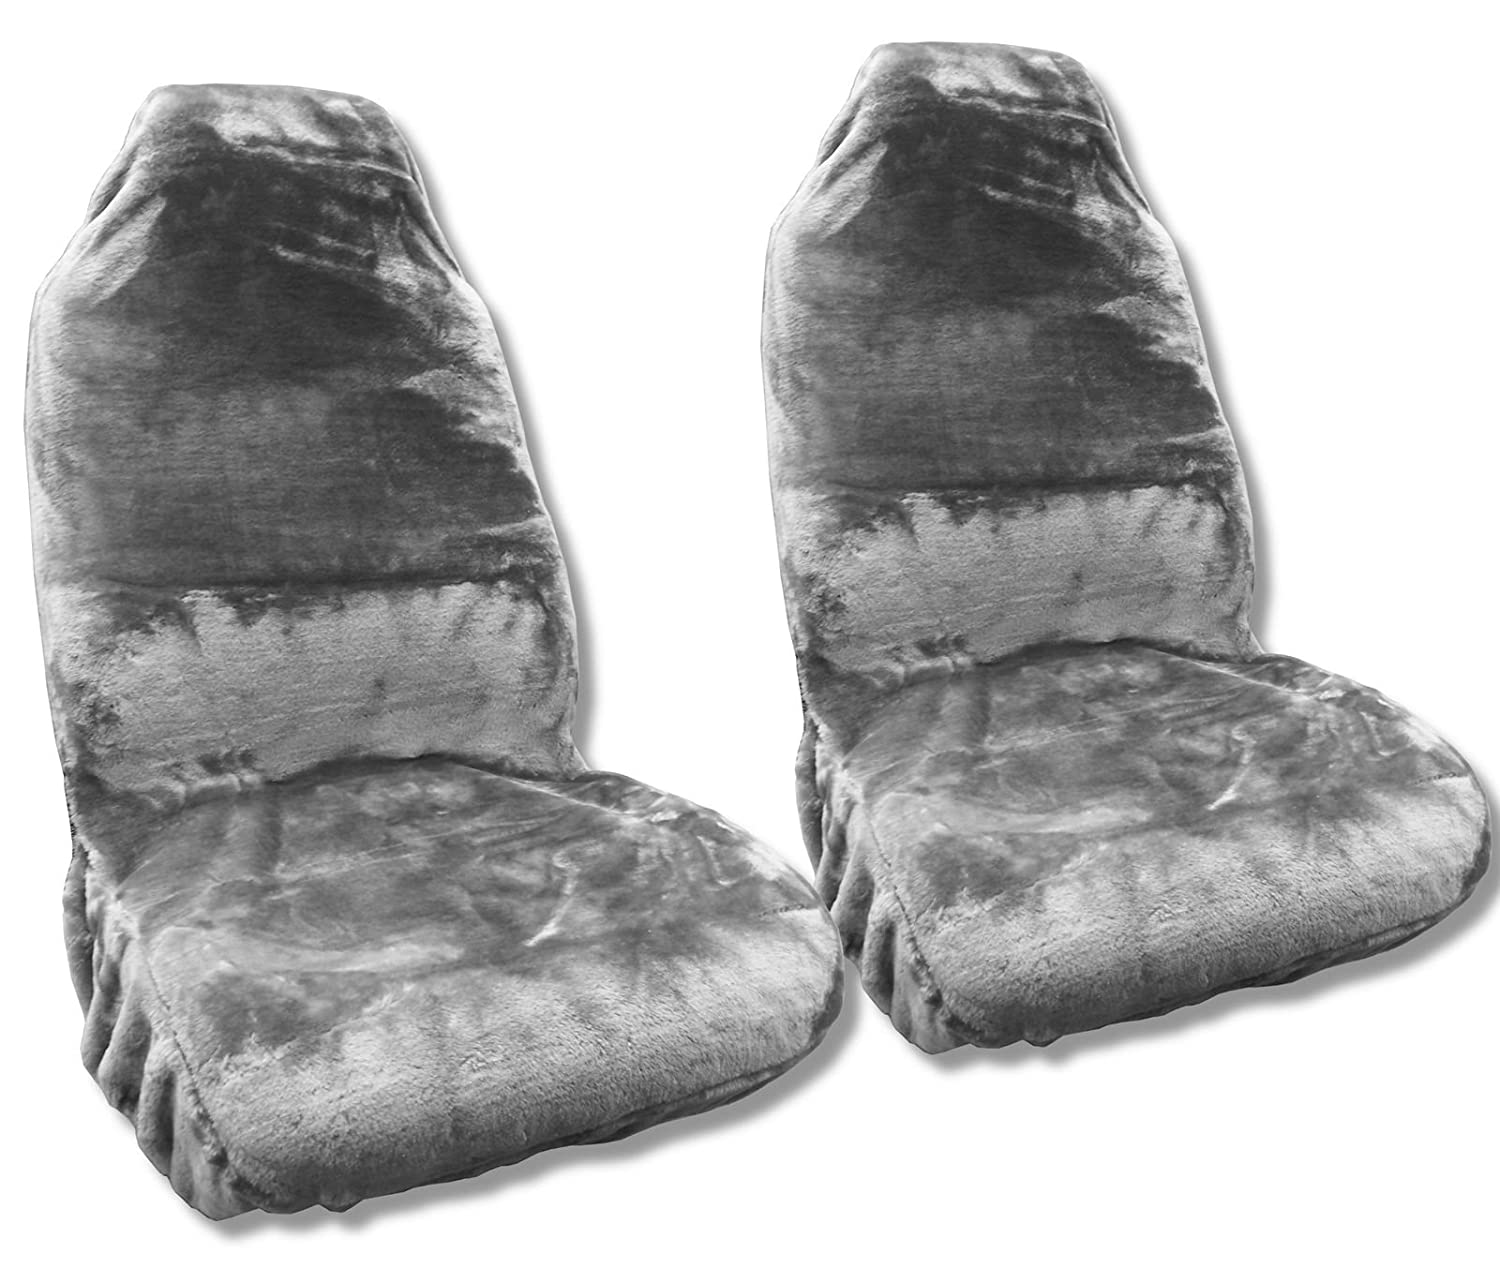 Synth Sheepskin Seat Cover Pair GRAY PLUSH Fleece For Toyota Camry Unique Imports